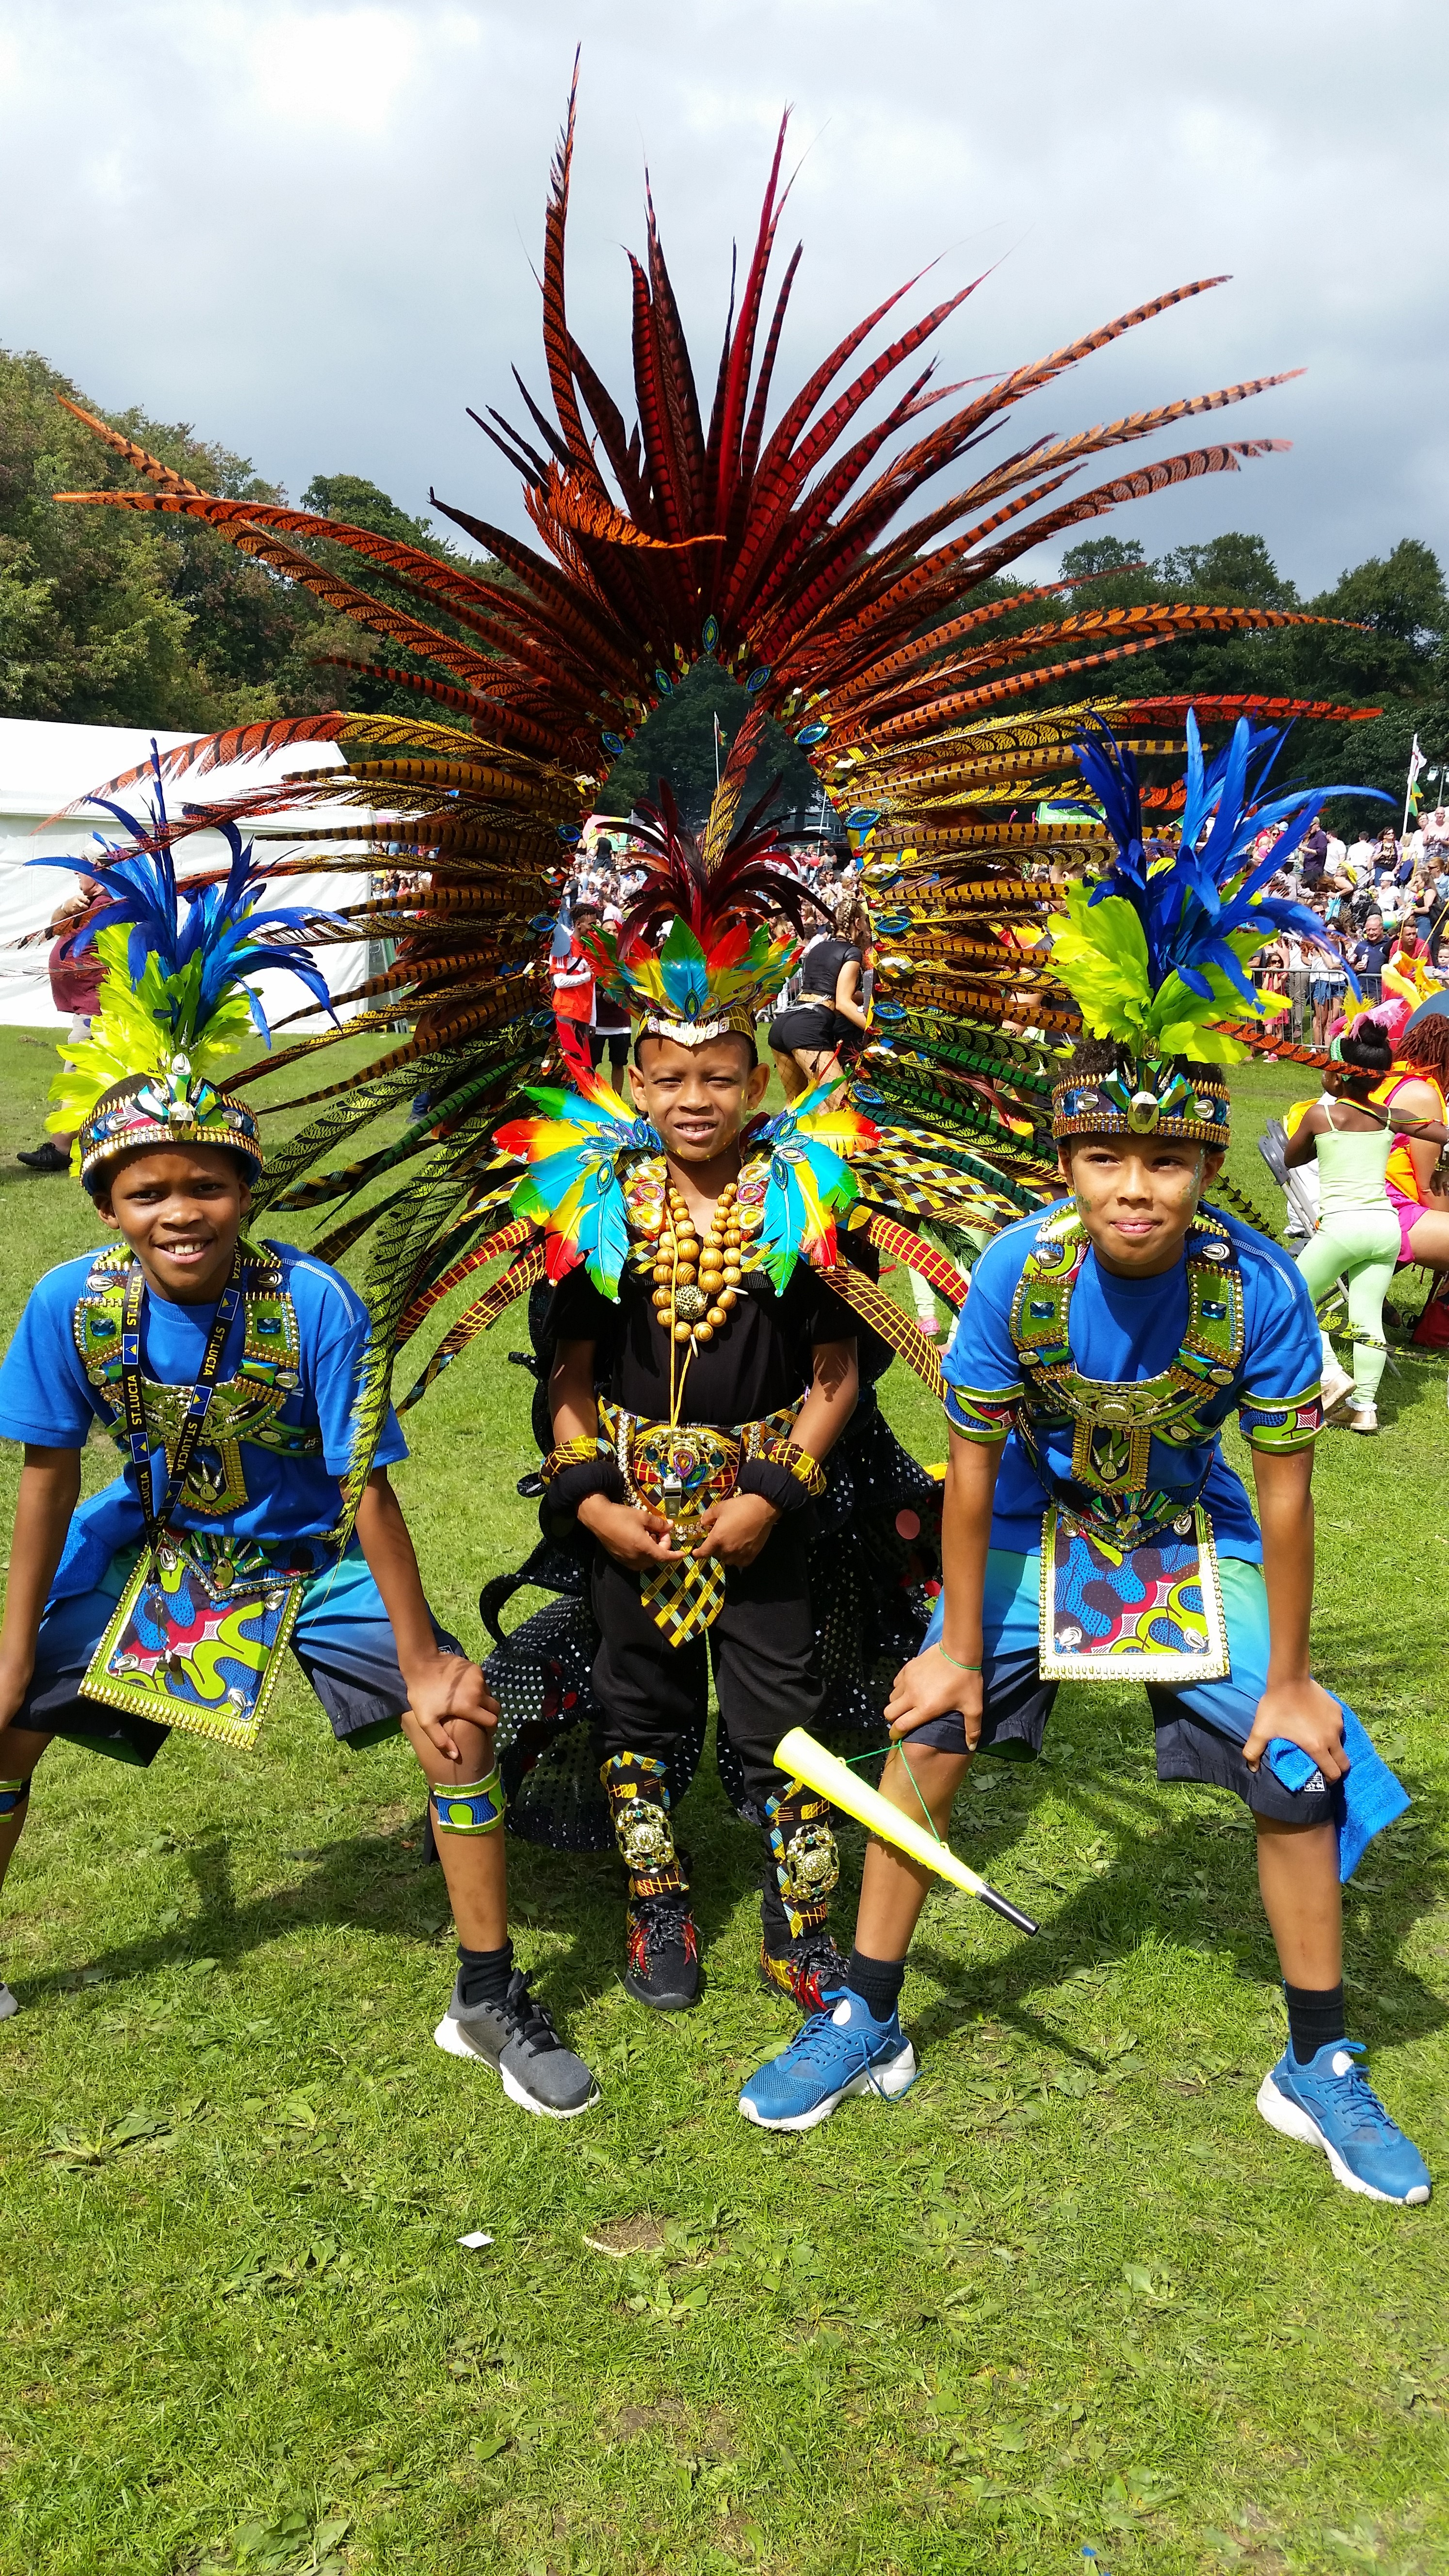 Leeds West Indian Carnival |West Indian Carnival Queen